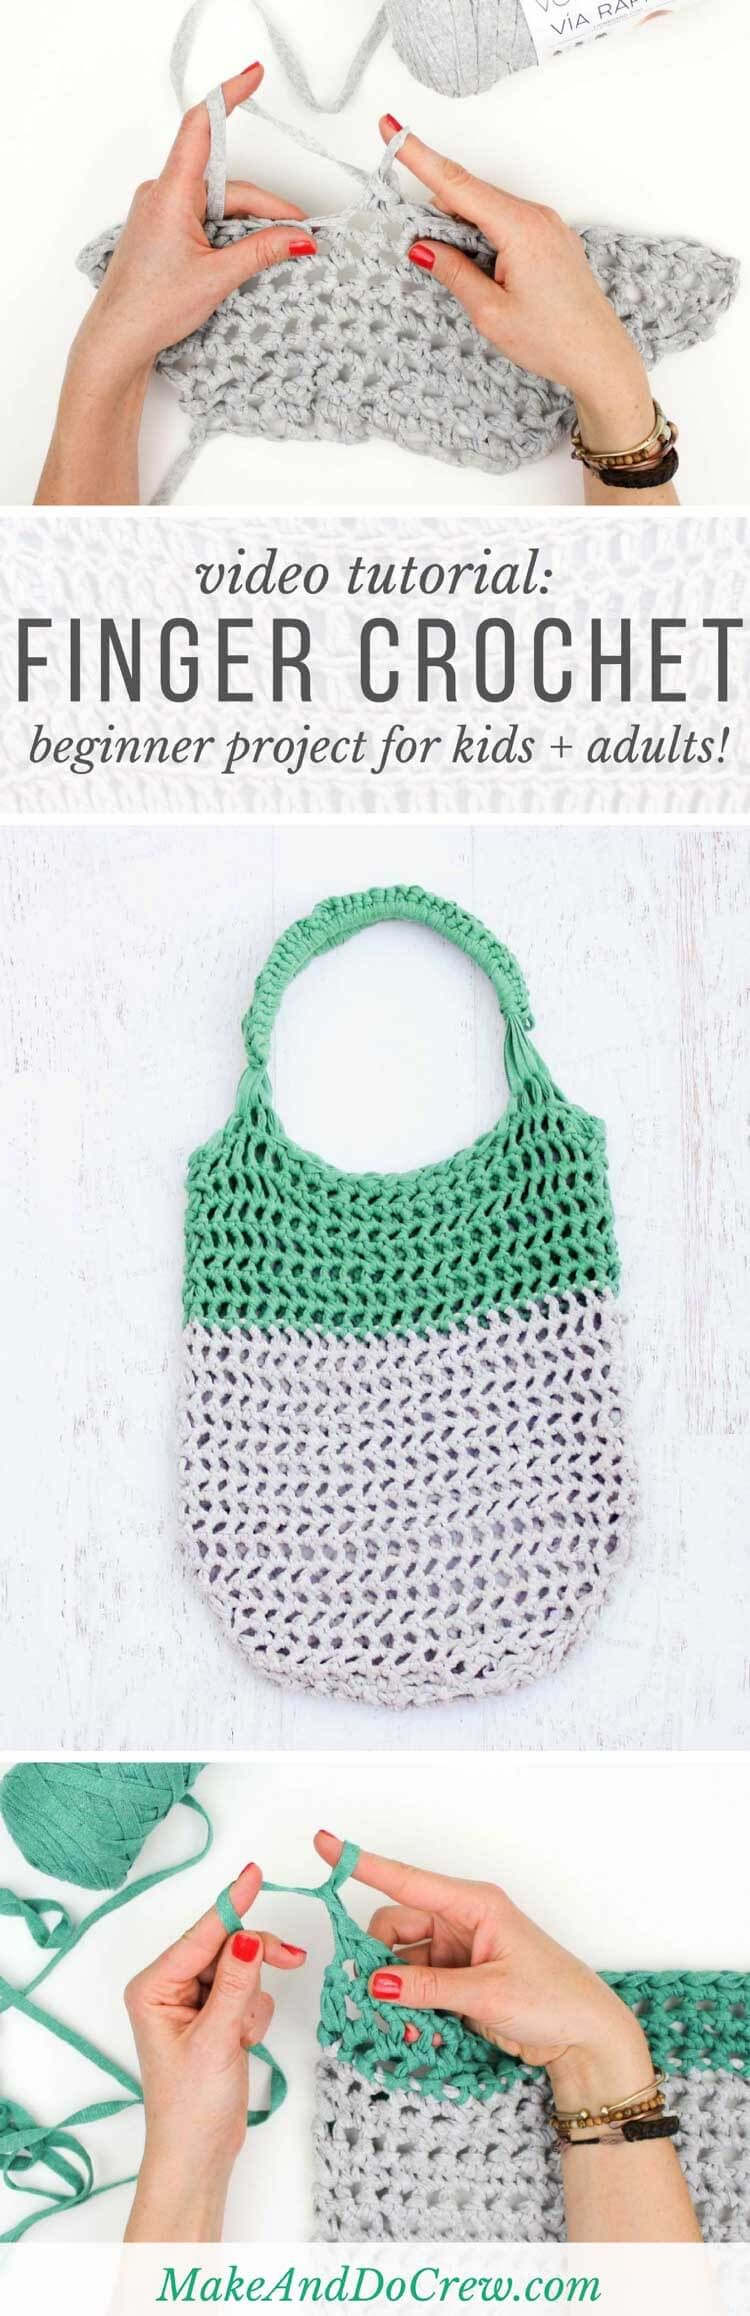 Video how to finger crochet free market tote bag pattern this free market tote bag pattern and video tutorial is the perfect introduction on how to bankloansurffo Gallery